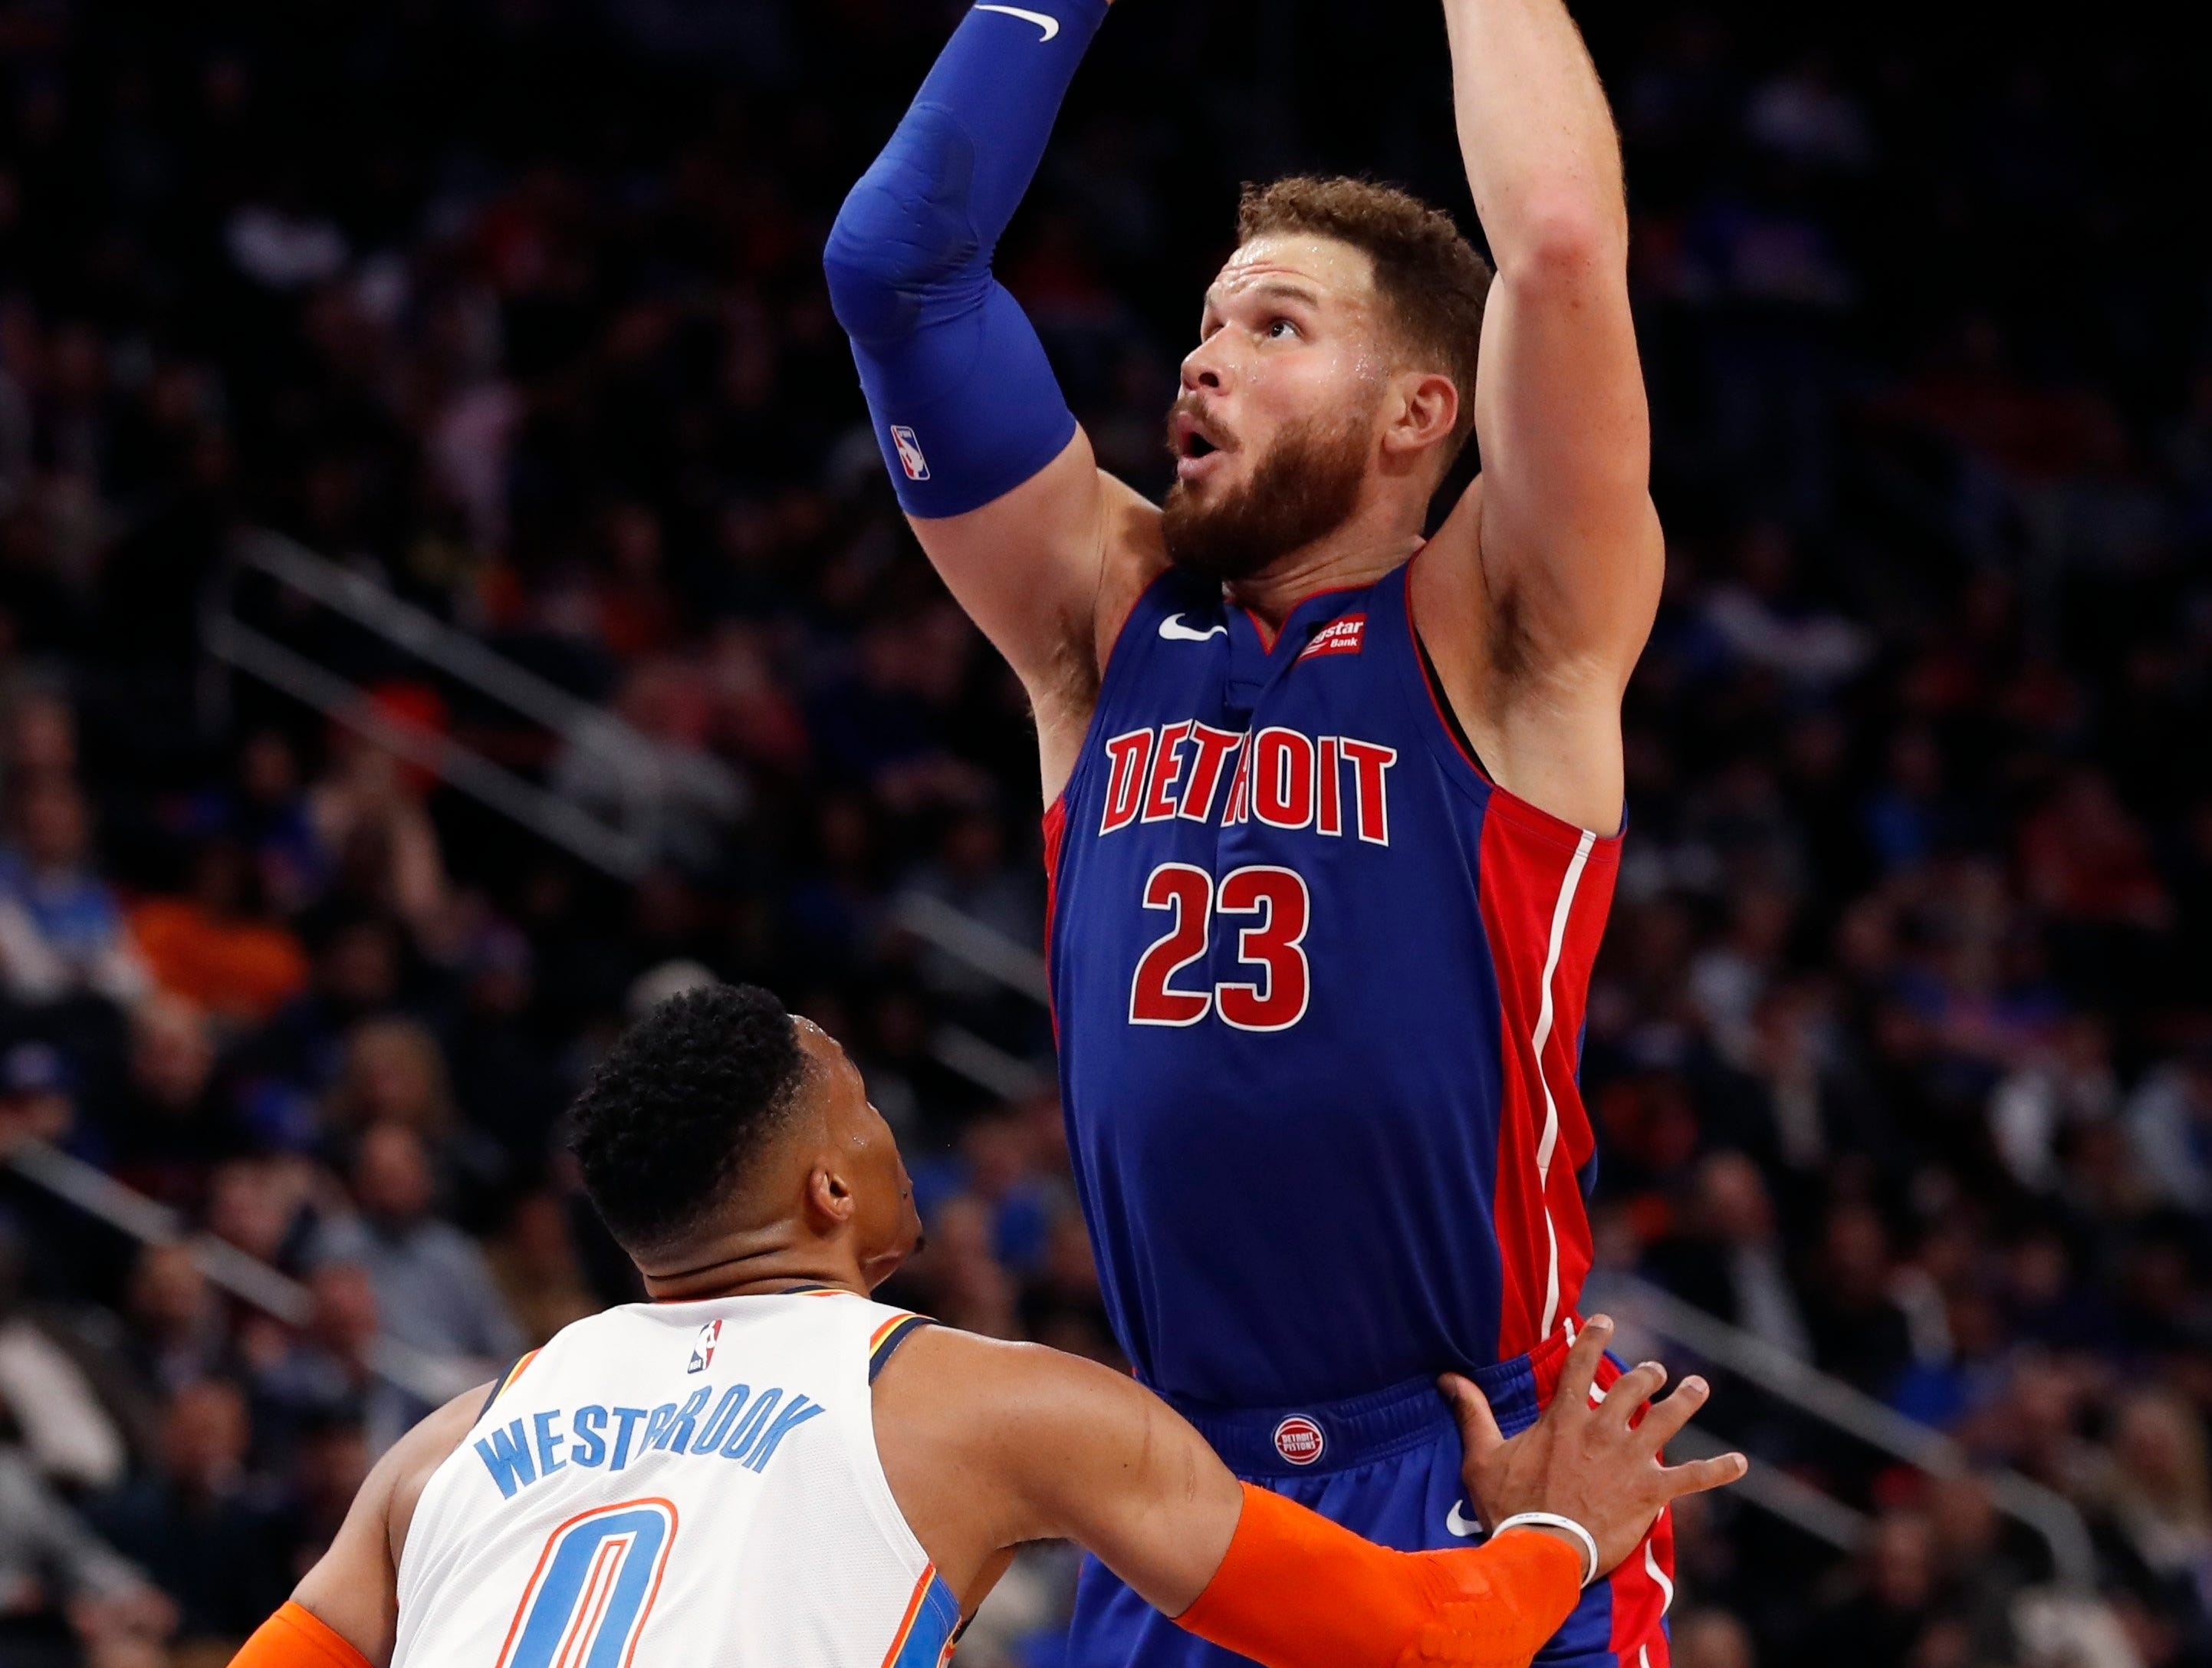 Detroit Pistons forward Blake Griffin (23) shoots as Oklahoma City Thunder guard Russell Westbrook (0) defends during the first half of an NBA basketball game, Monday, Dec. 3, 2018, in Detroit.